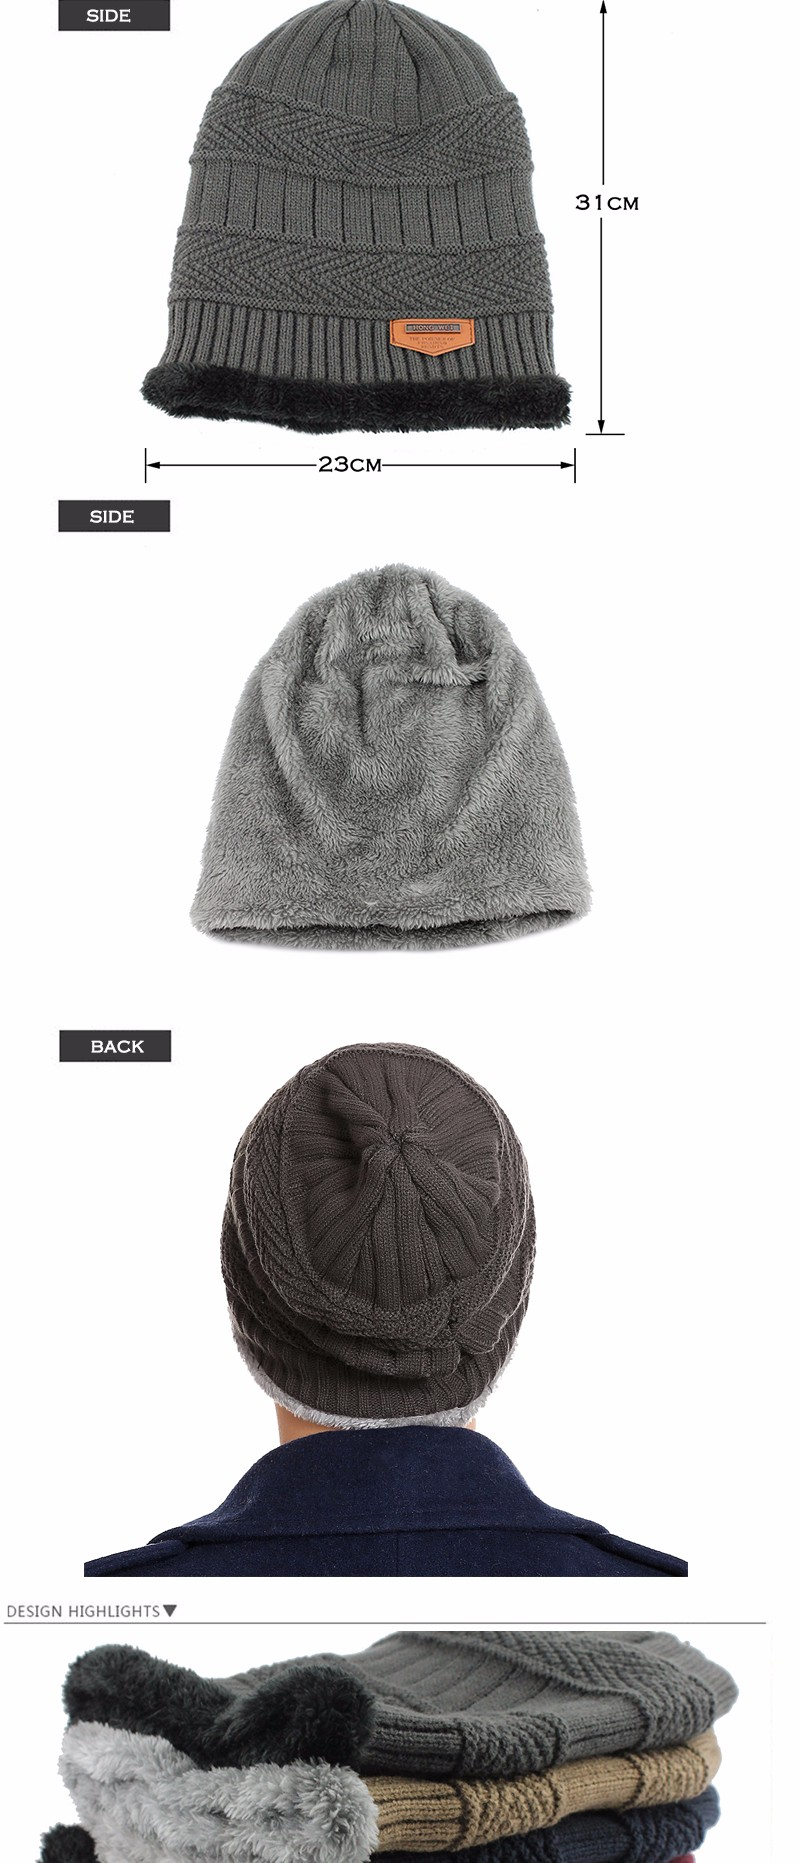 FETSBUY Pure Color Winter Skullies Beanies Hat Knit Winter Hat For Man Warm Hat Velvet Cap Bonnet Toucas Inverno Knitted Hats 64